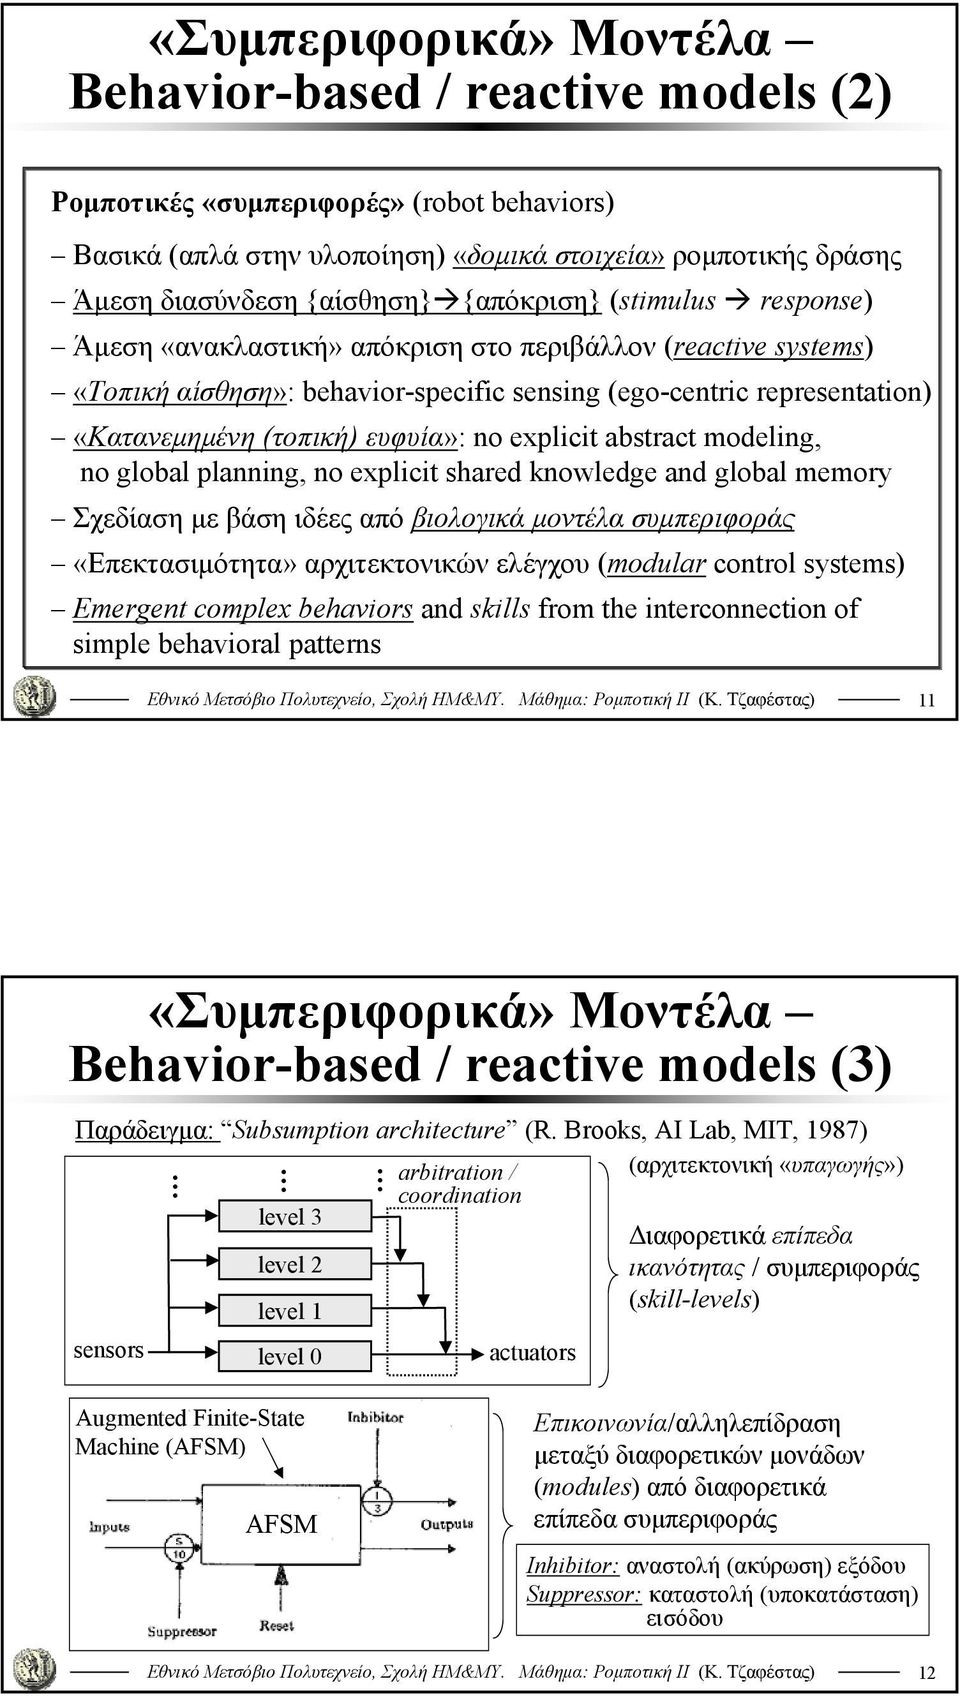 no explicit abstract modeling, no global planning, no explicit shared knowledge and global memory Σχεδίαση με βάση ιδέες από βιολογικά μοντέλα συμπεριφοράς «Επεκτασιμότητα» αρχιτεκτονικών ελέγχου